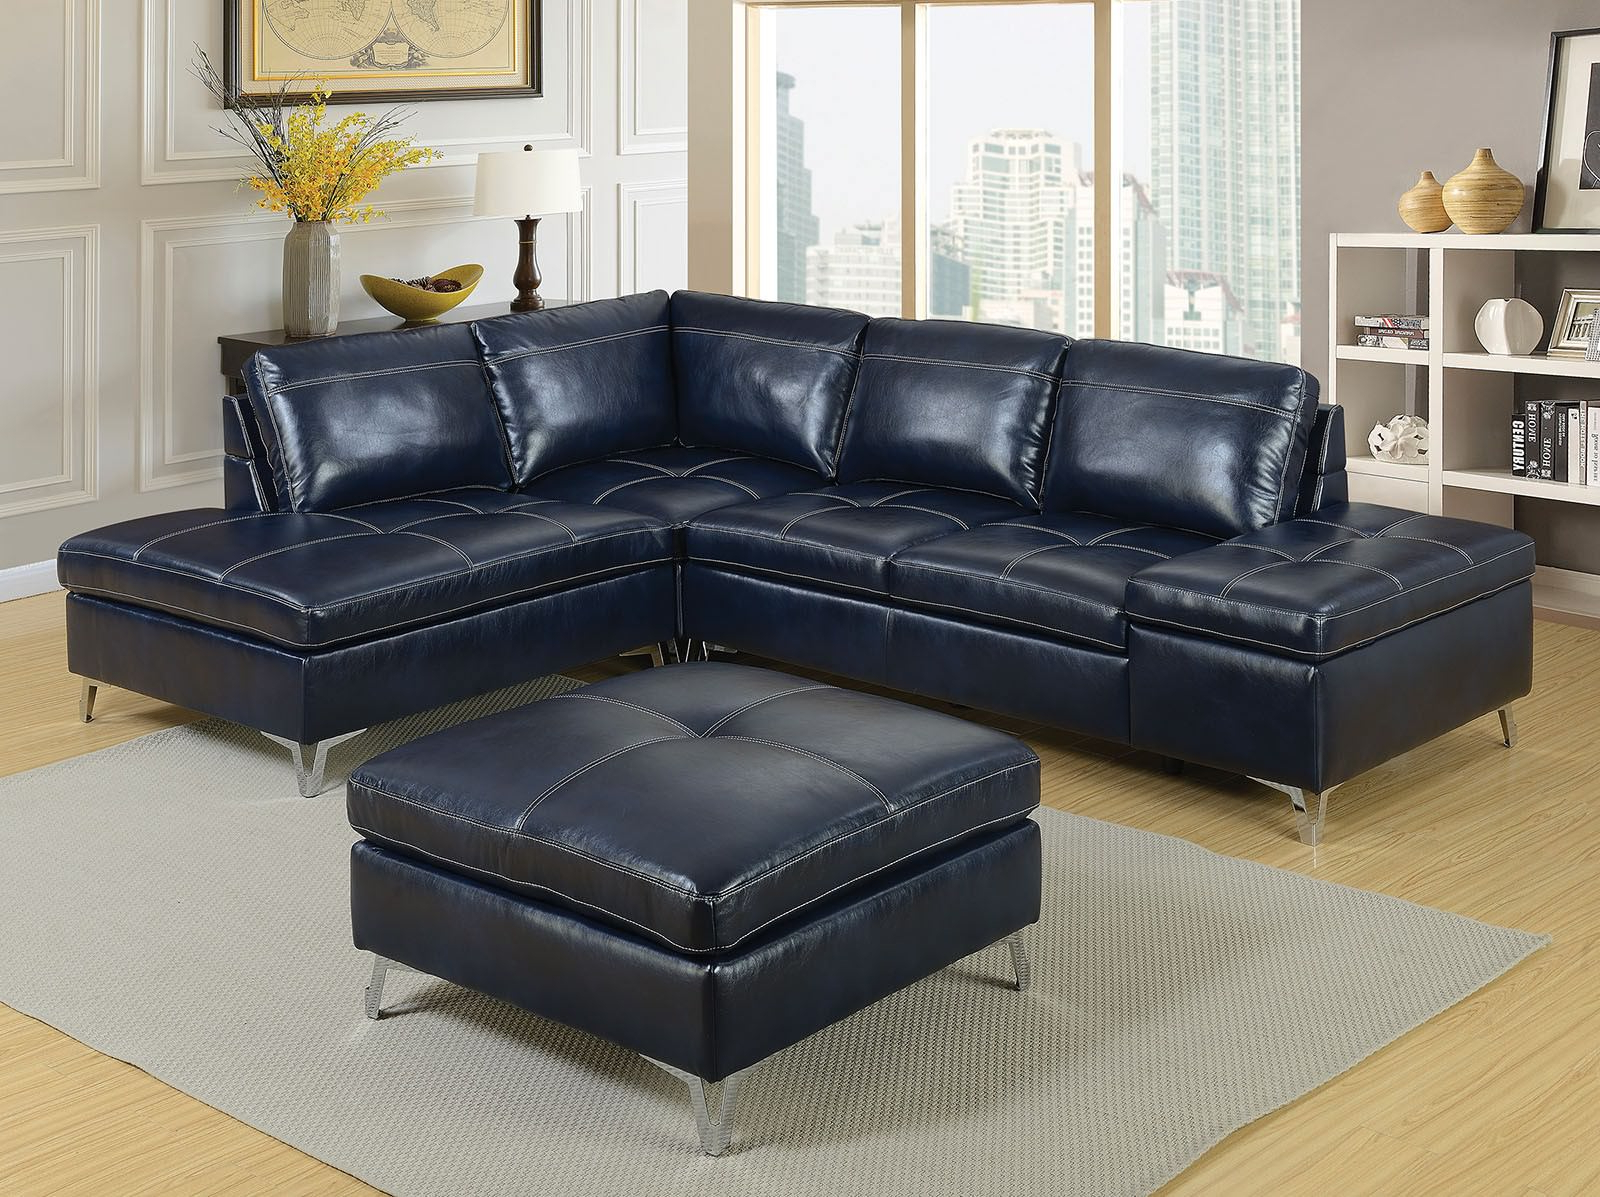 Preferred Tatum Dark Grey 2 Piece Sectionals With Raf Chaise Inside Leather Sectionals (Gallery 11 of 20)